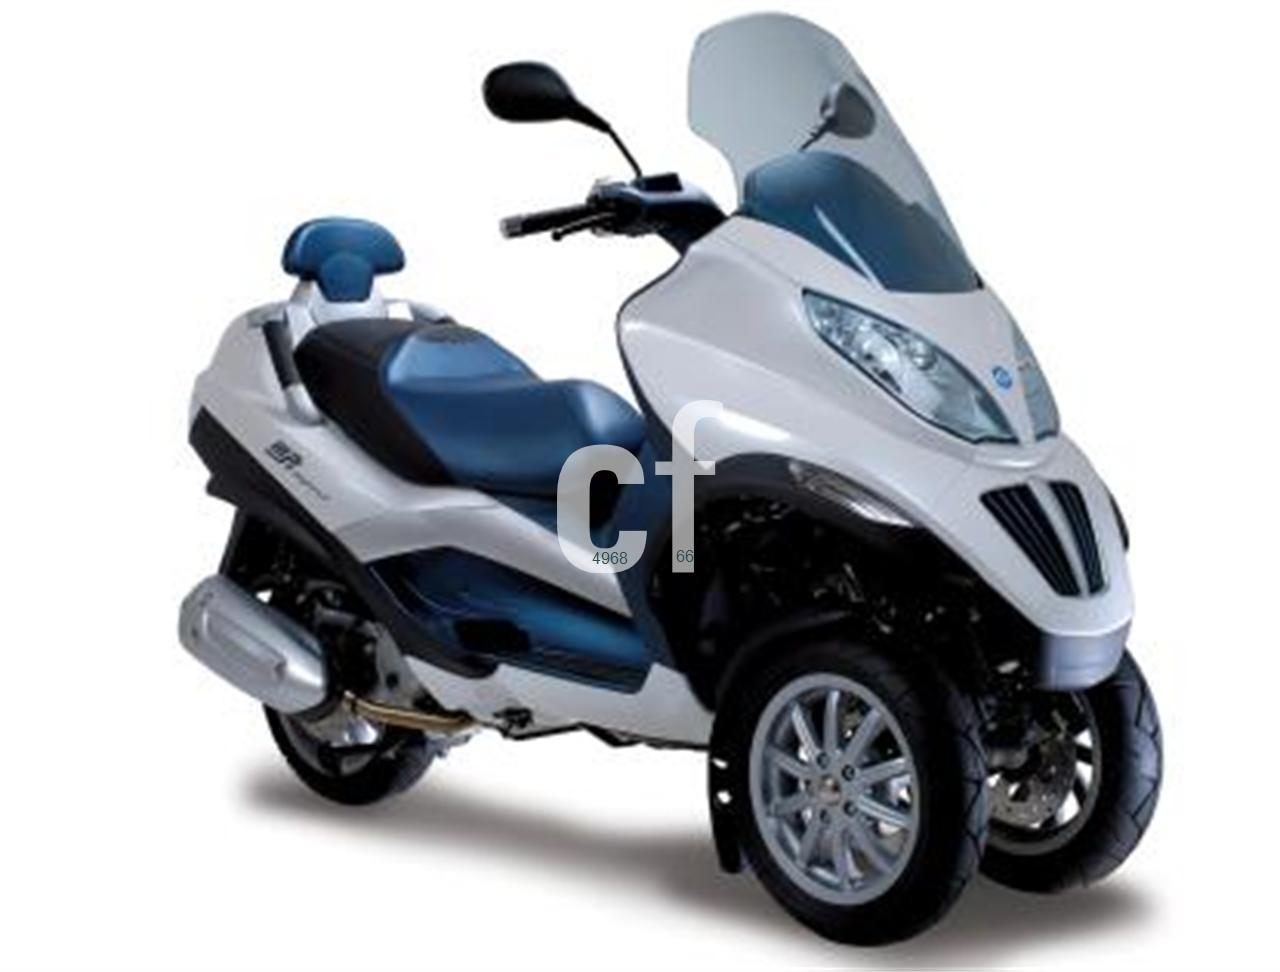 Piaggio MP3 125 Hybrid 2010 images #120240